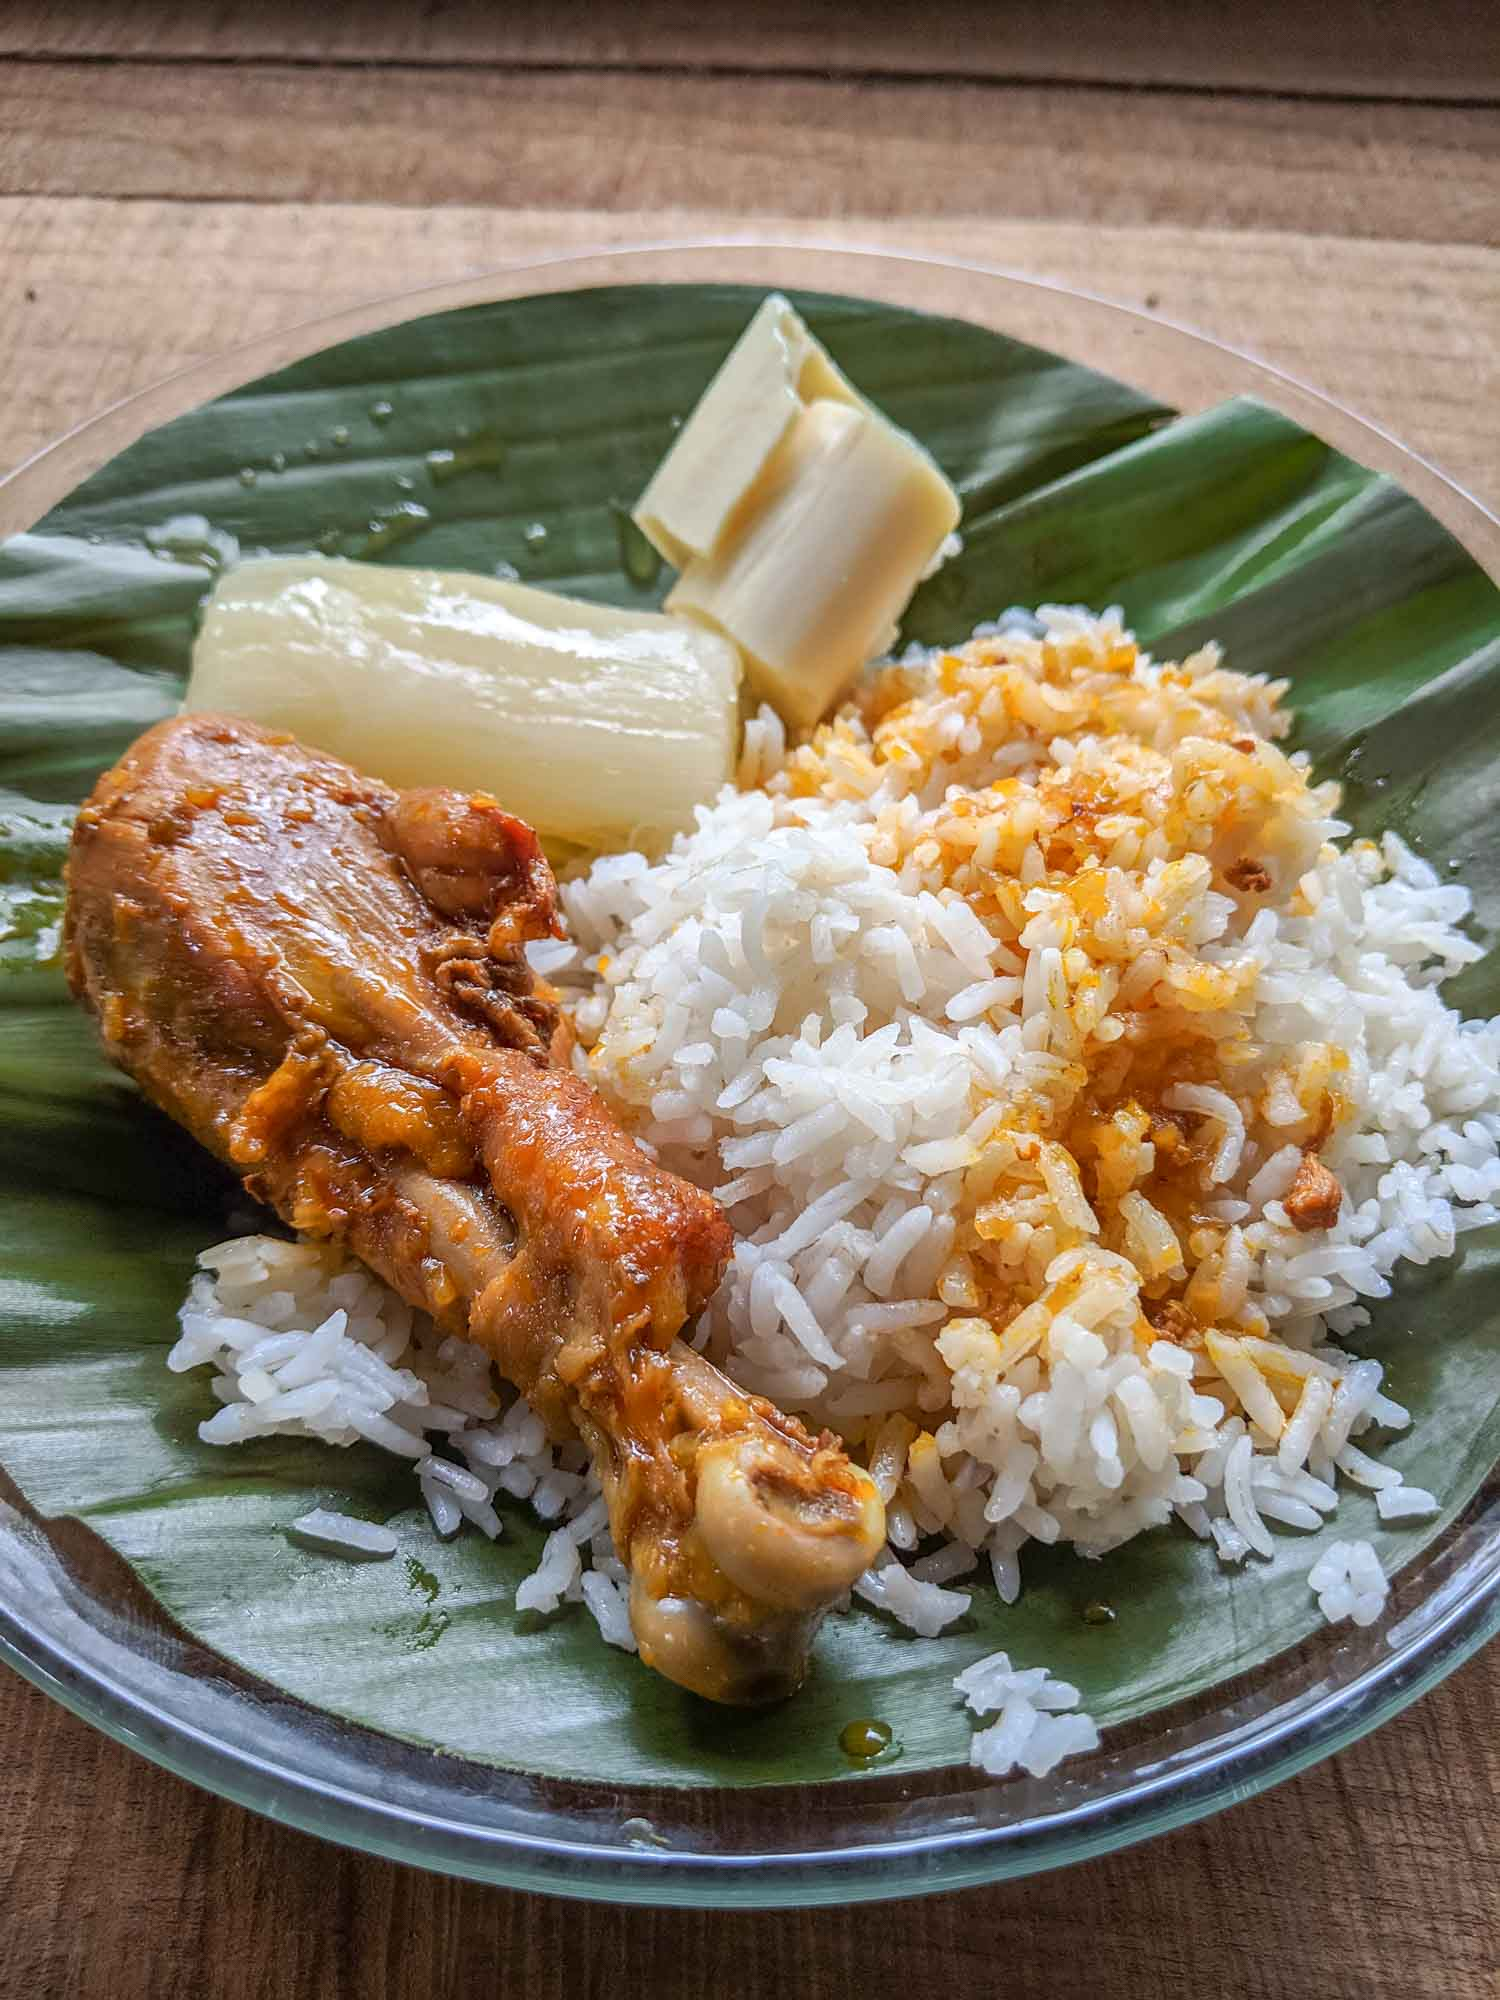 Arroz con pollo or chicken and rice in Costa Rica